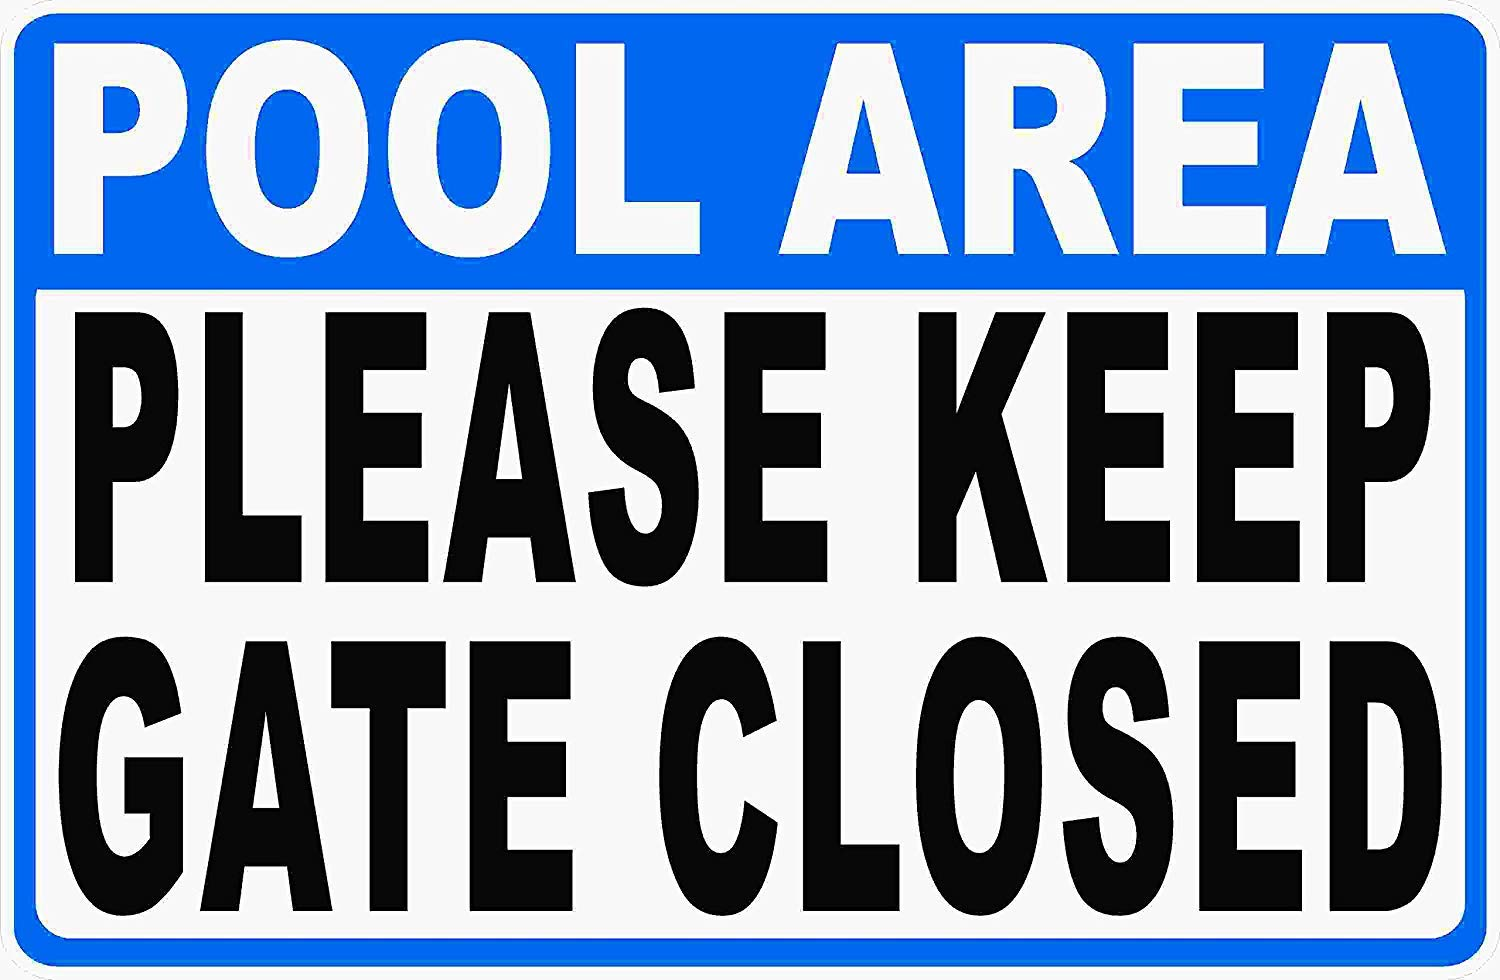 Eletina Case Wall Signs Pool Area Please Keep Gate Closed Sign 16x24 Metal Rules Pools Deck by Eletina Case